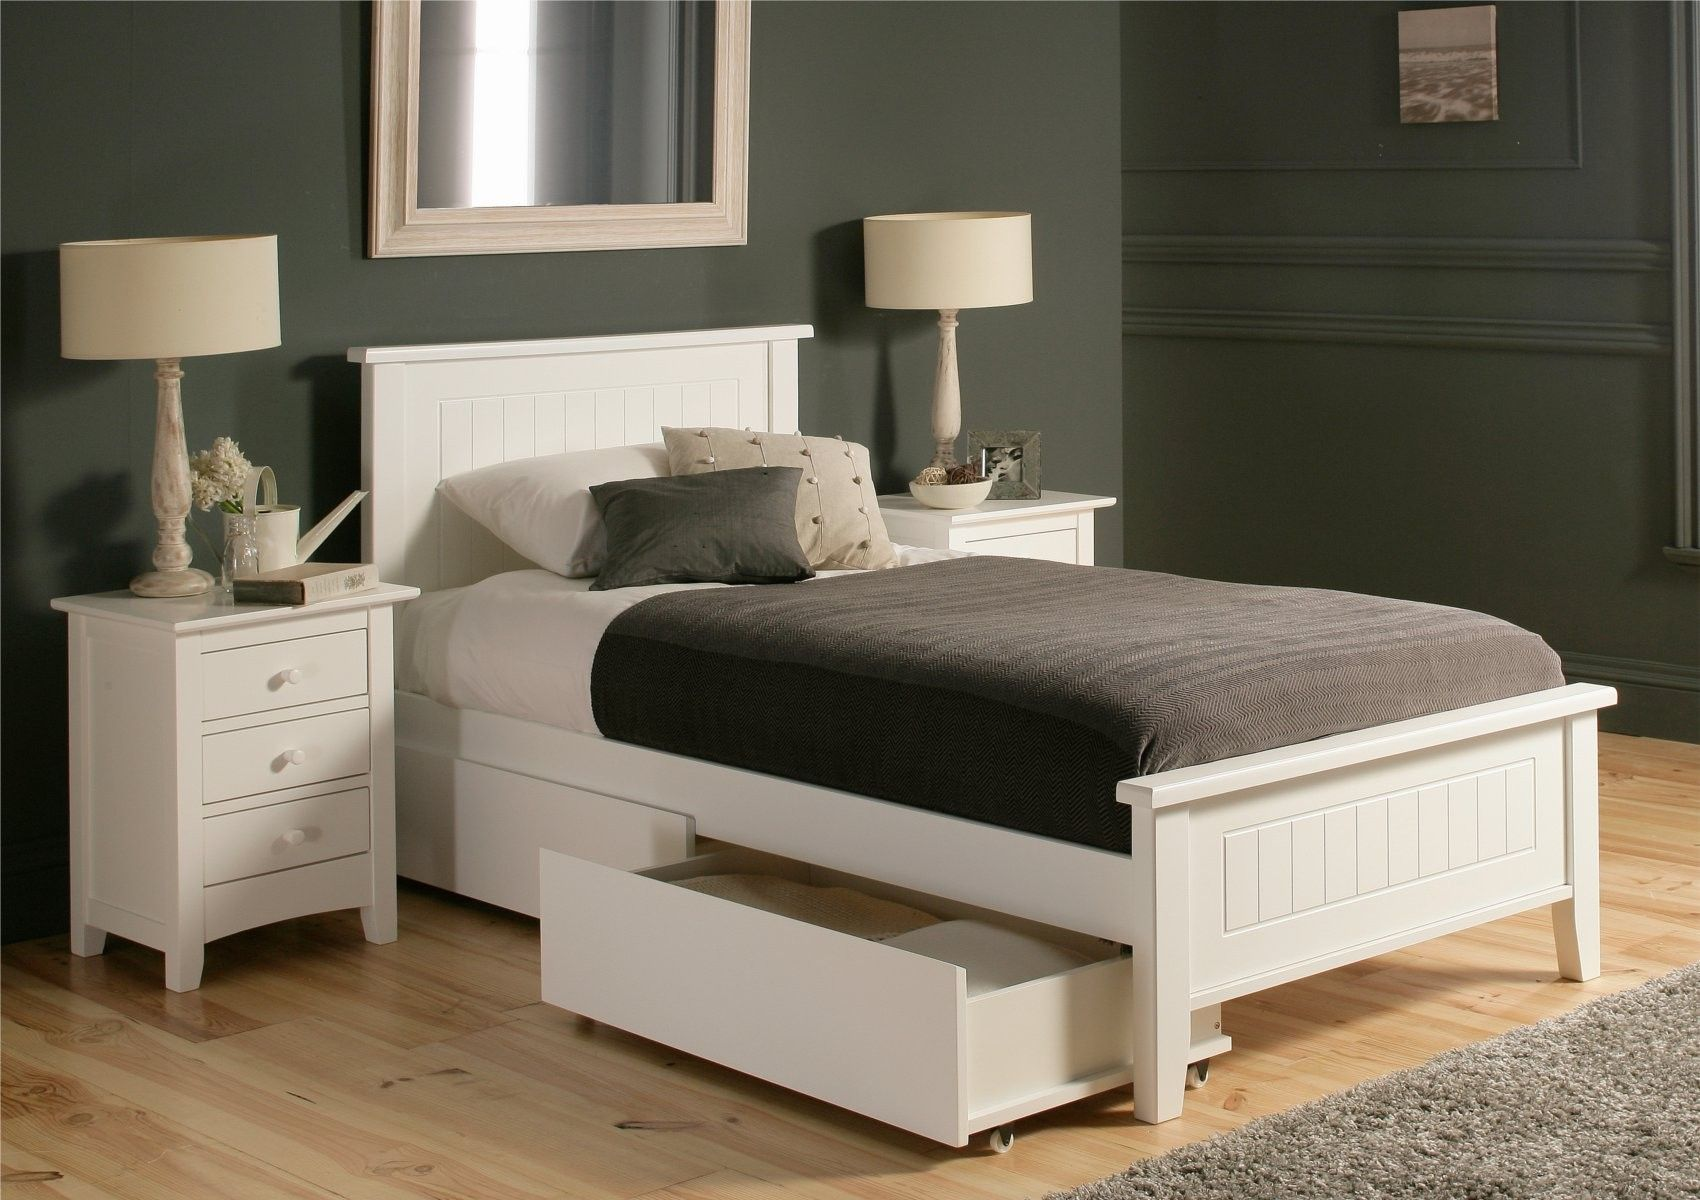 Single bed frame design - New England Single New England Solo Wooden Bed Frame